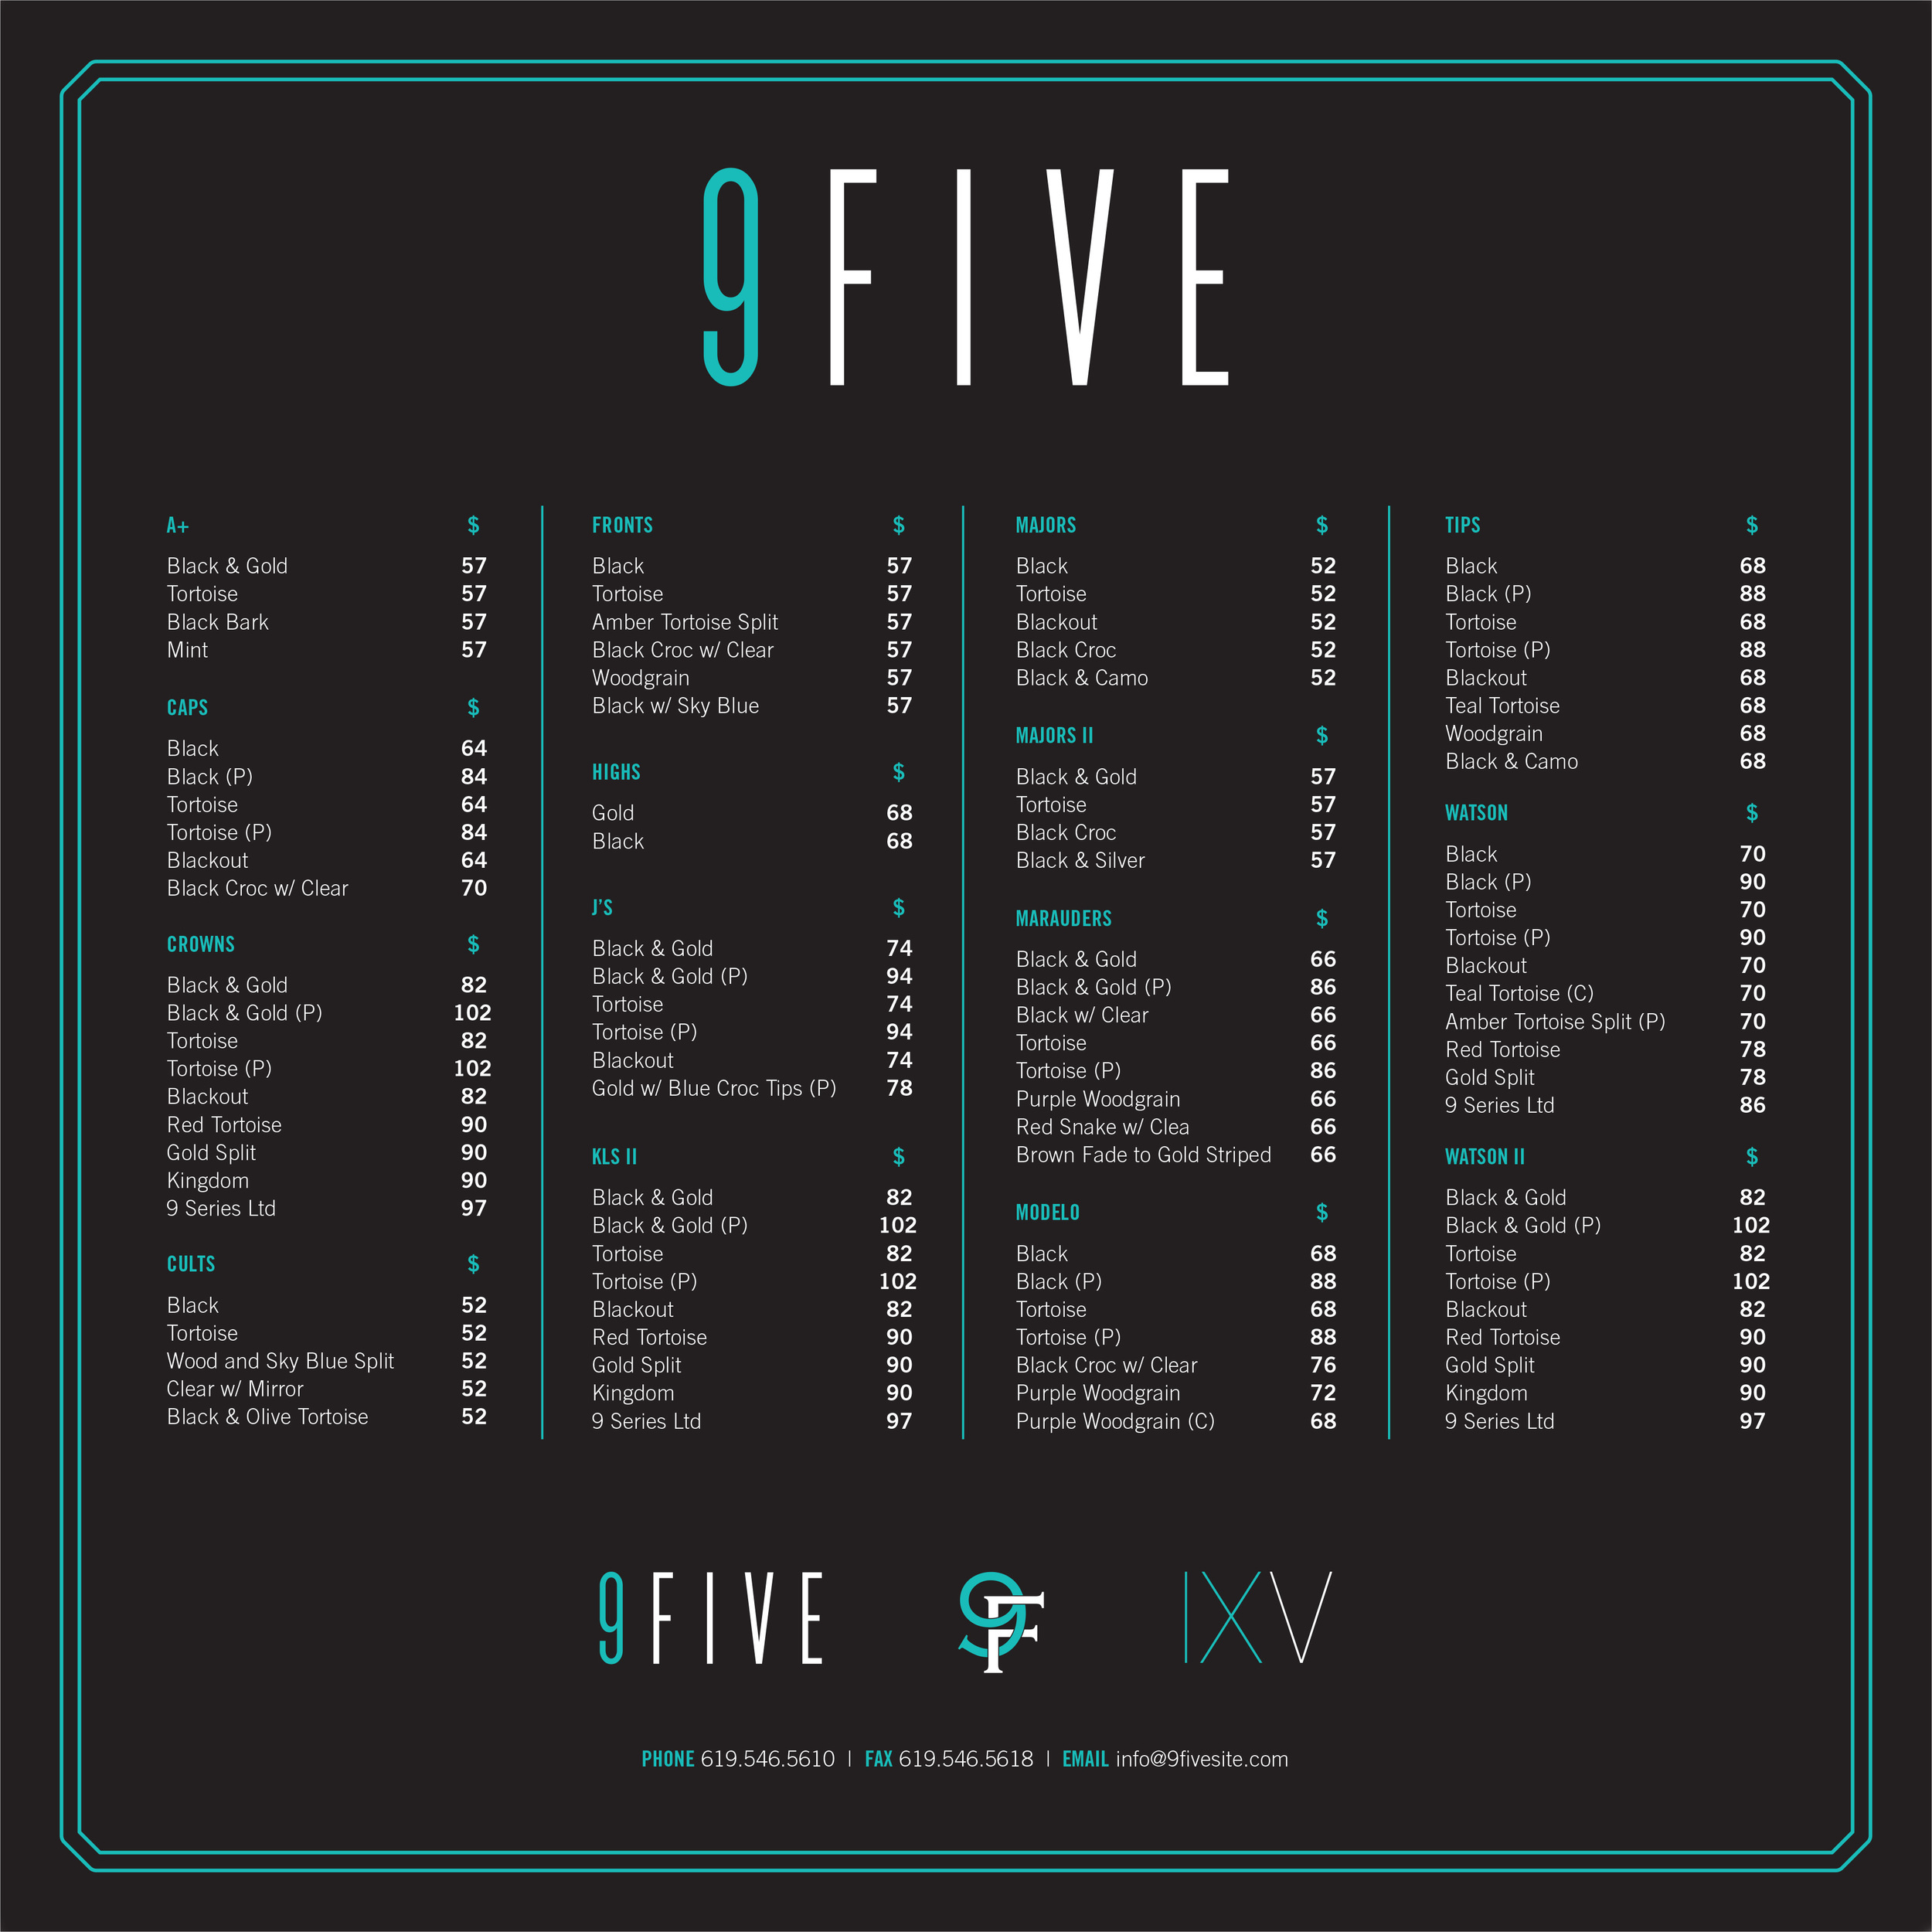 9FIVE price list featuring the styles and prices of sunglasses